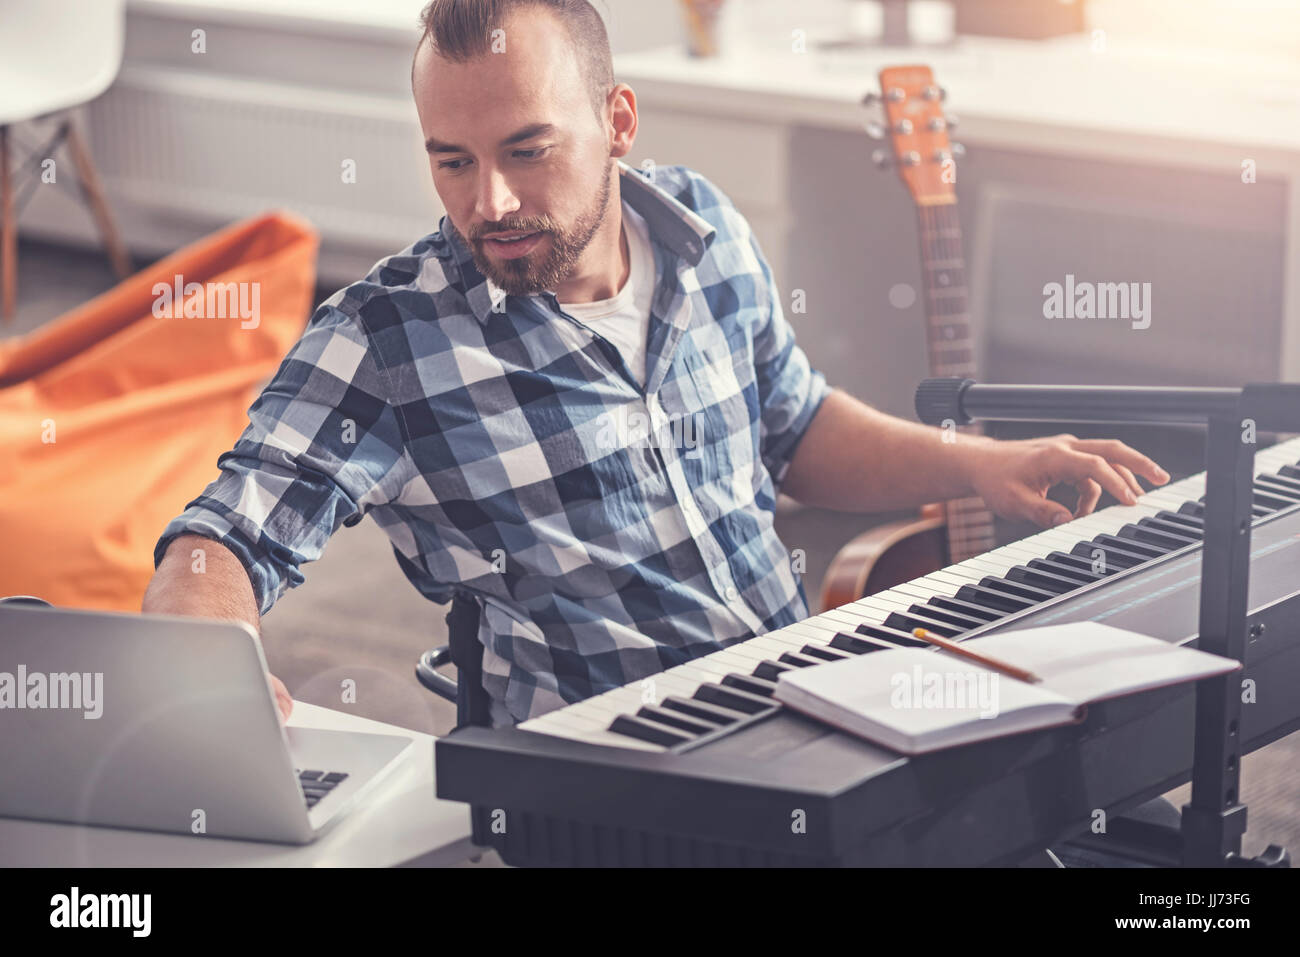 Confident accomplished musician using his laptop - Stock Image